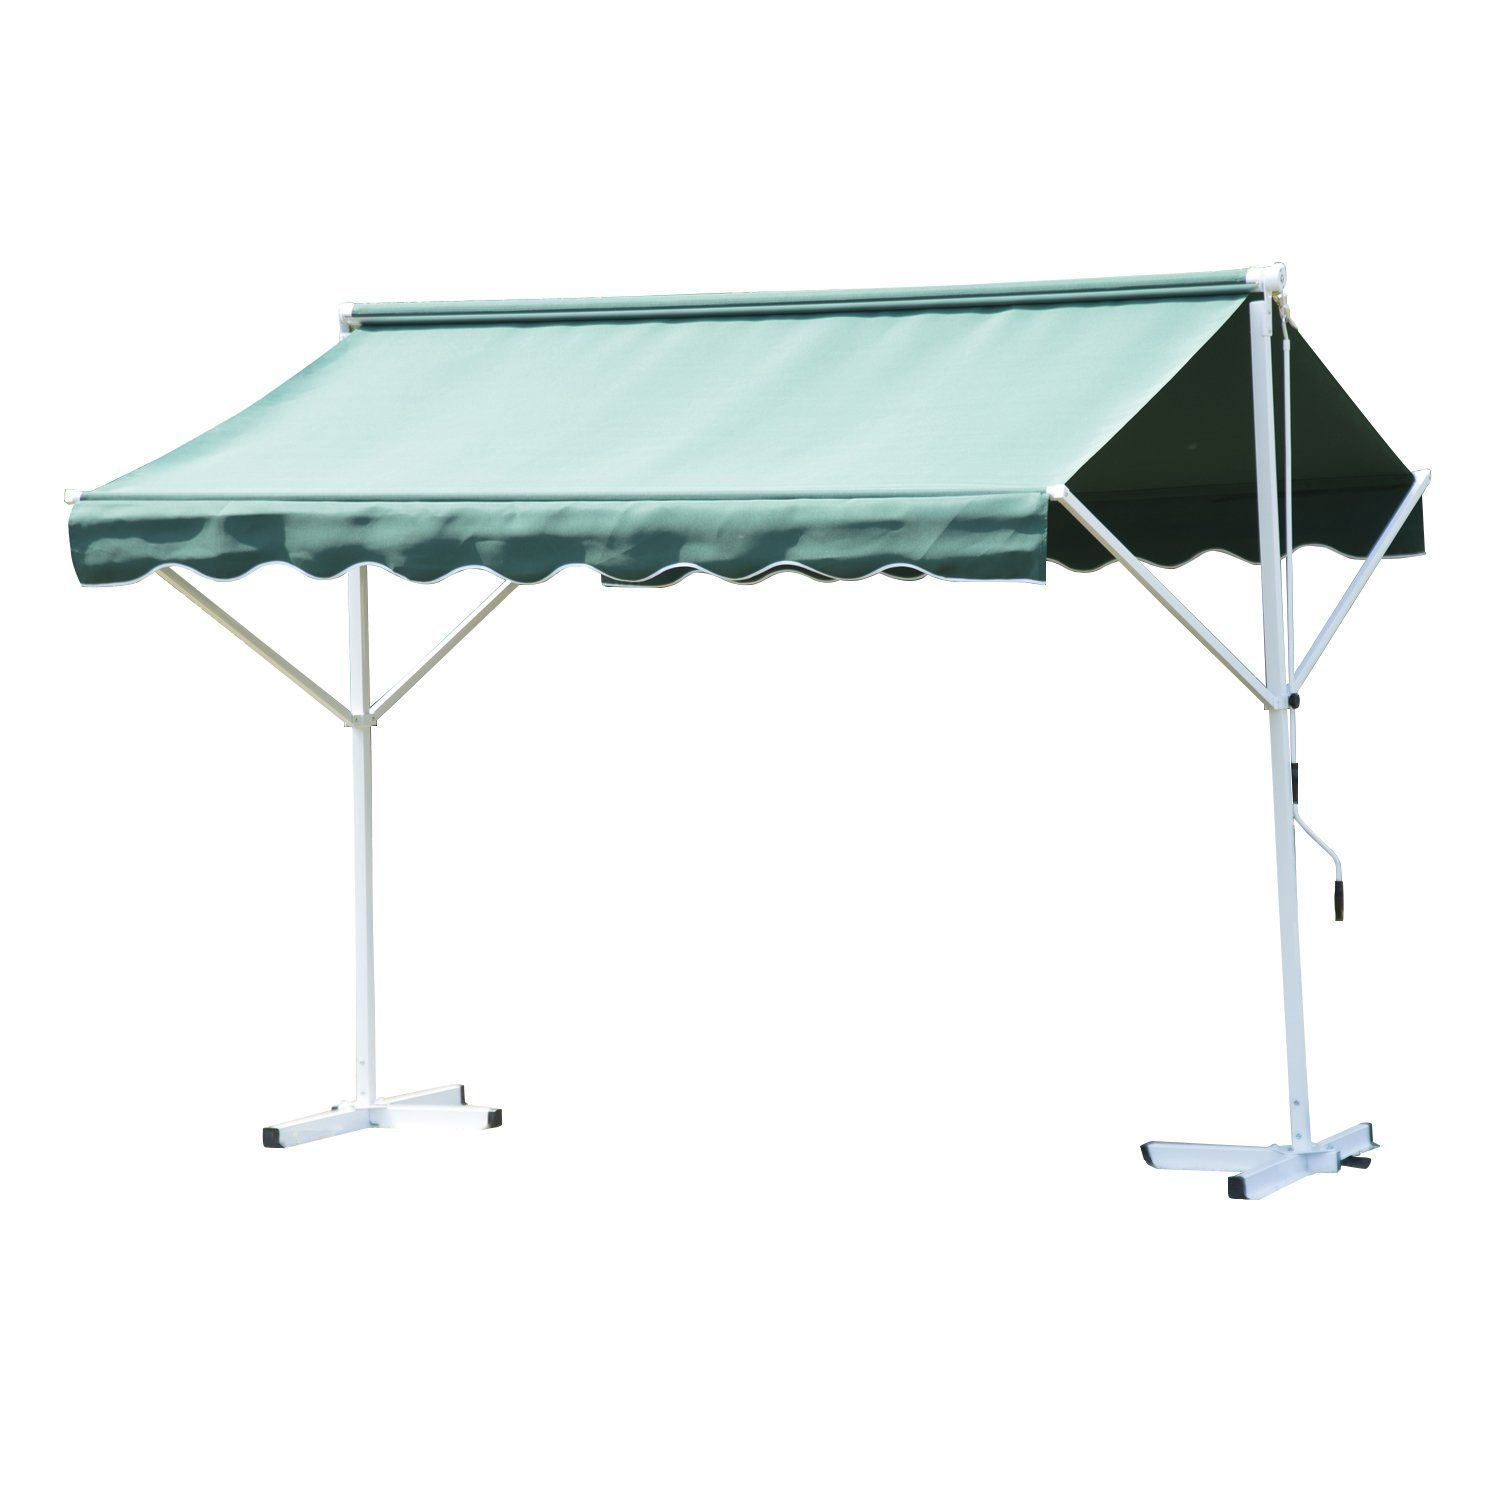 canopy awning gazebo waterproof shade metal x patio garden curtains outdoor roof living dci outsunny